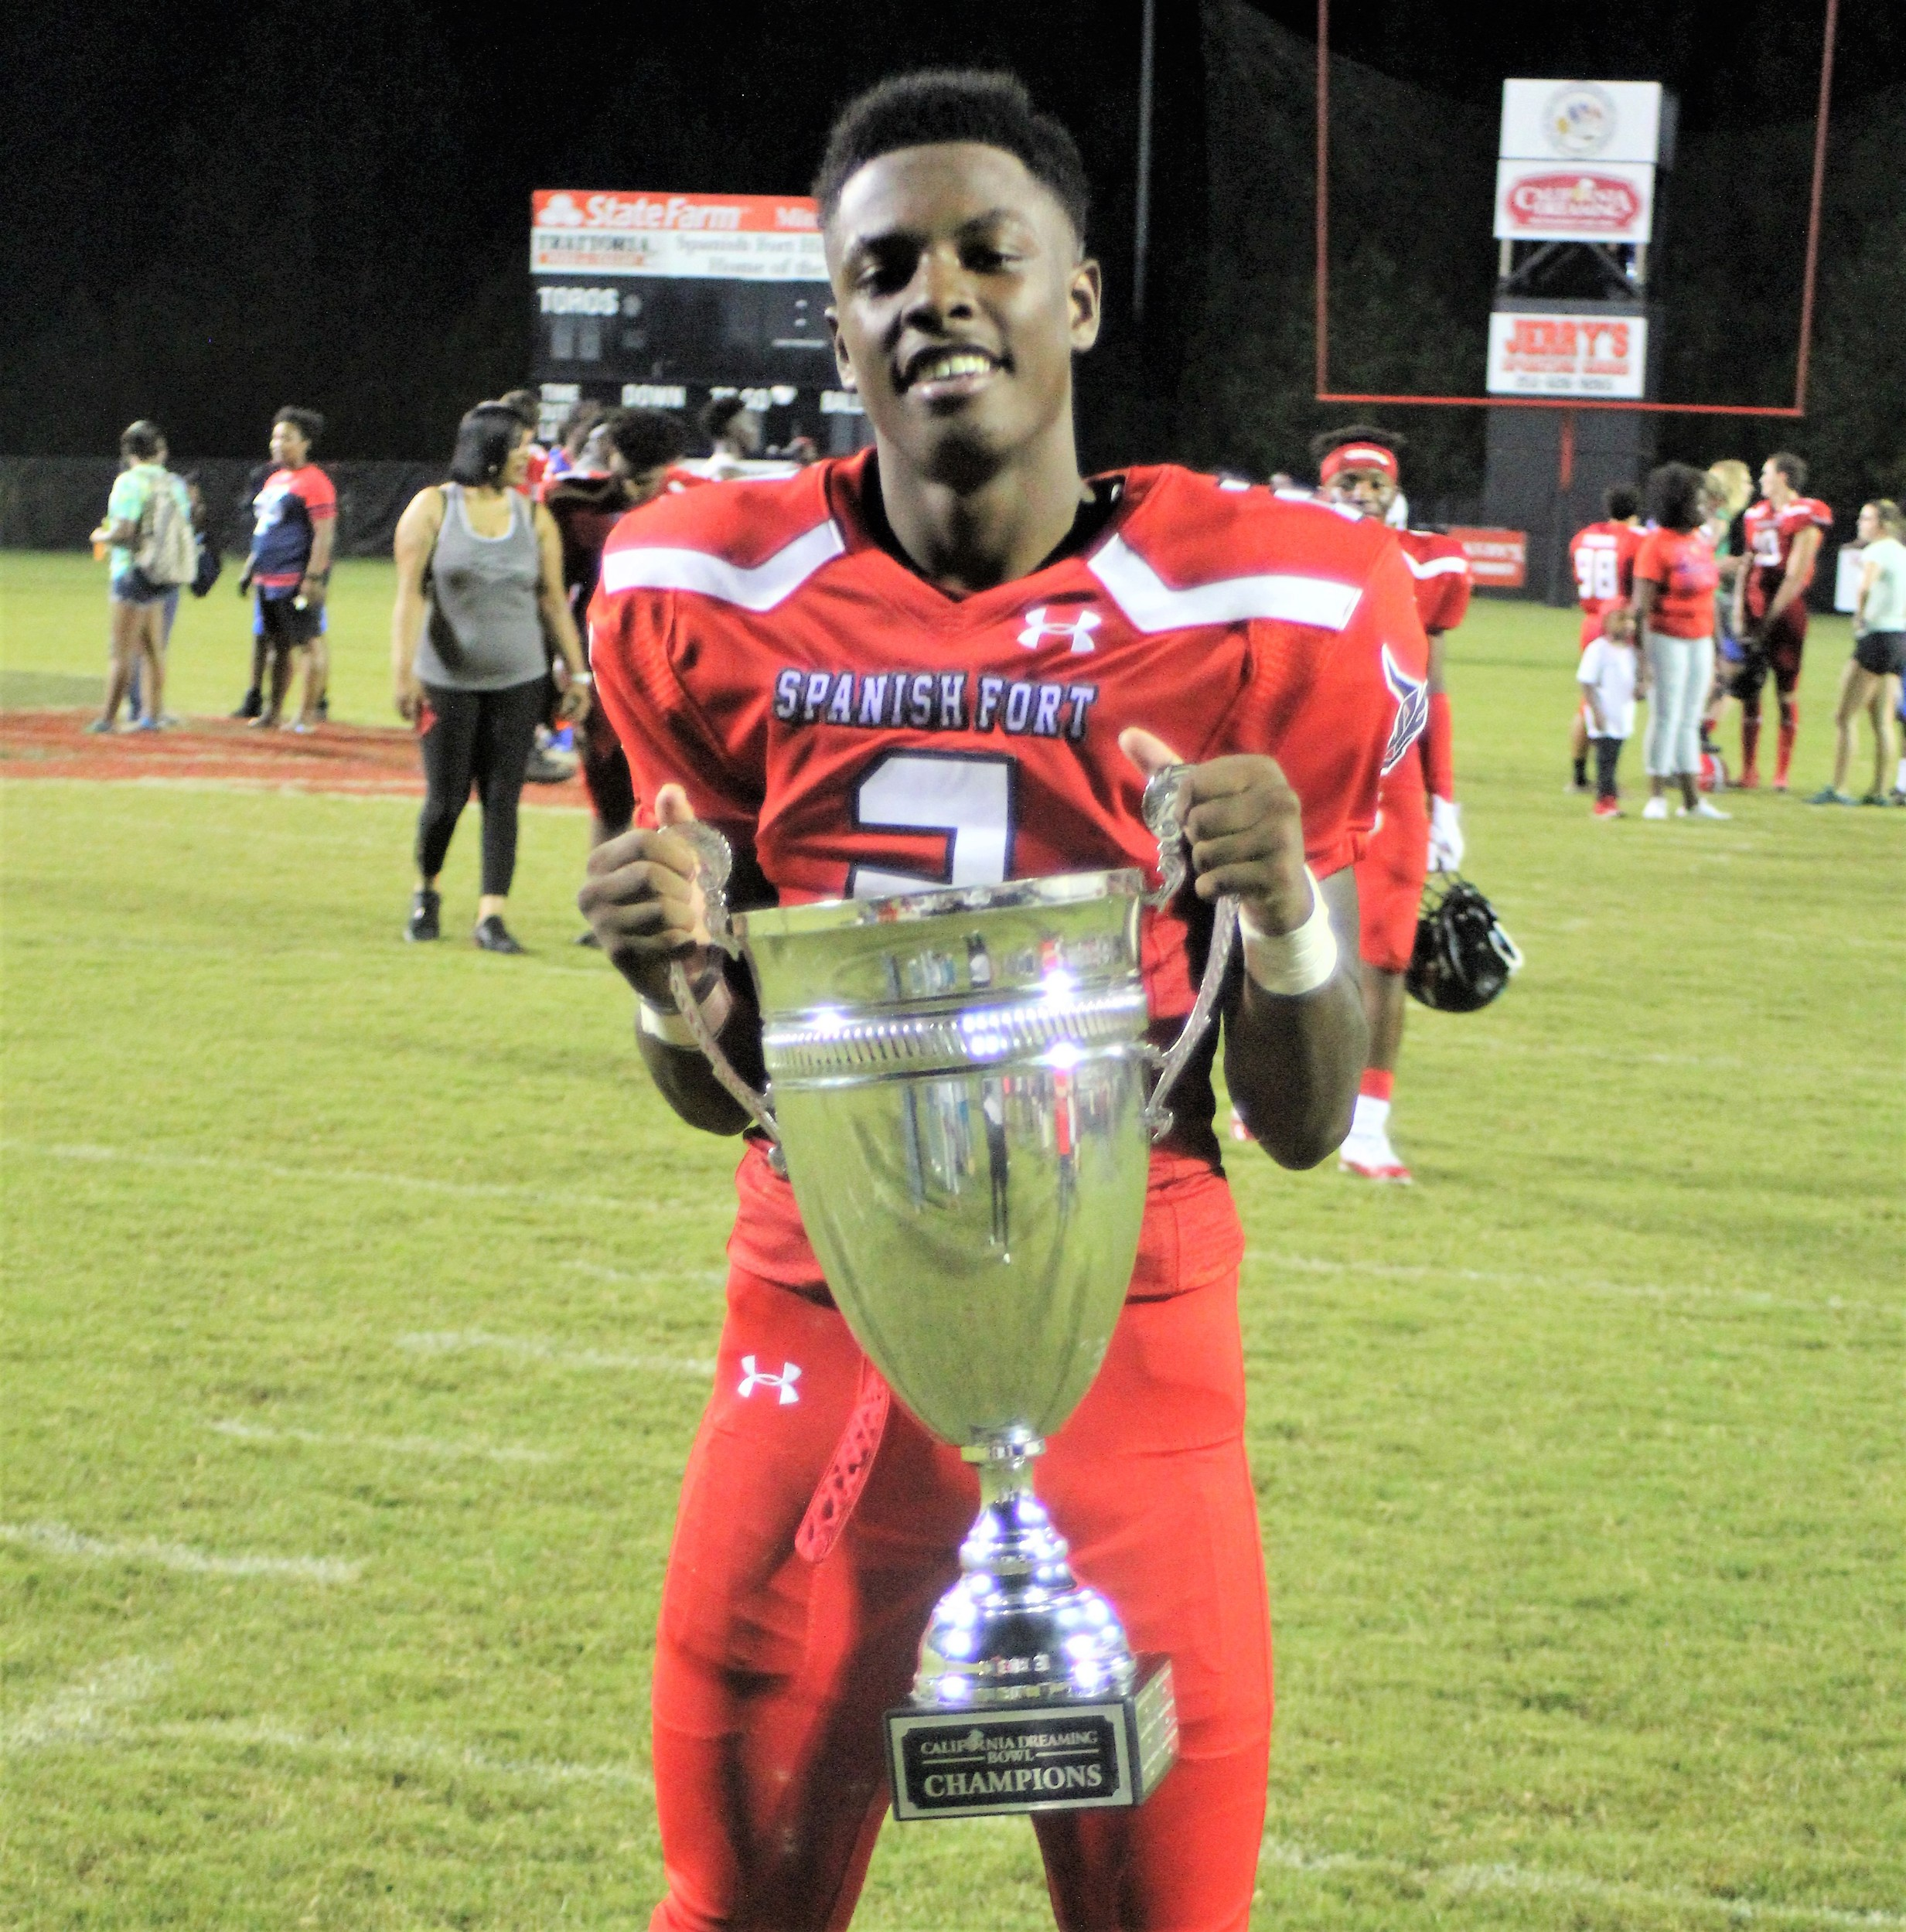 Spanish Fort corner back Desmond (DJ) James with the 2018 California Dreaming Bowl trophy.